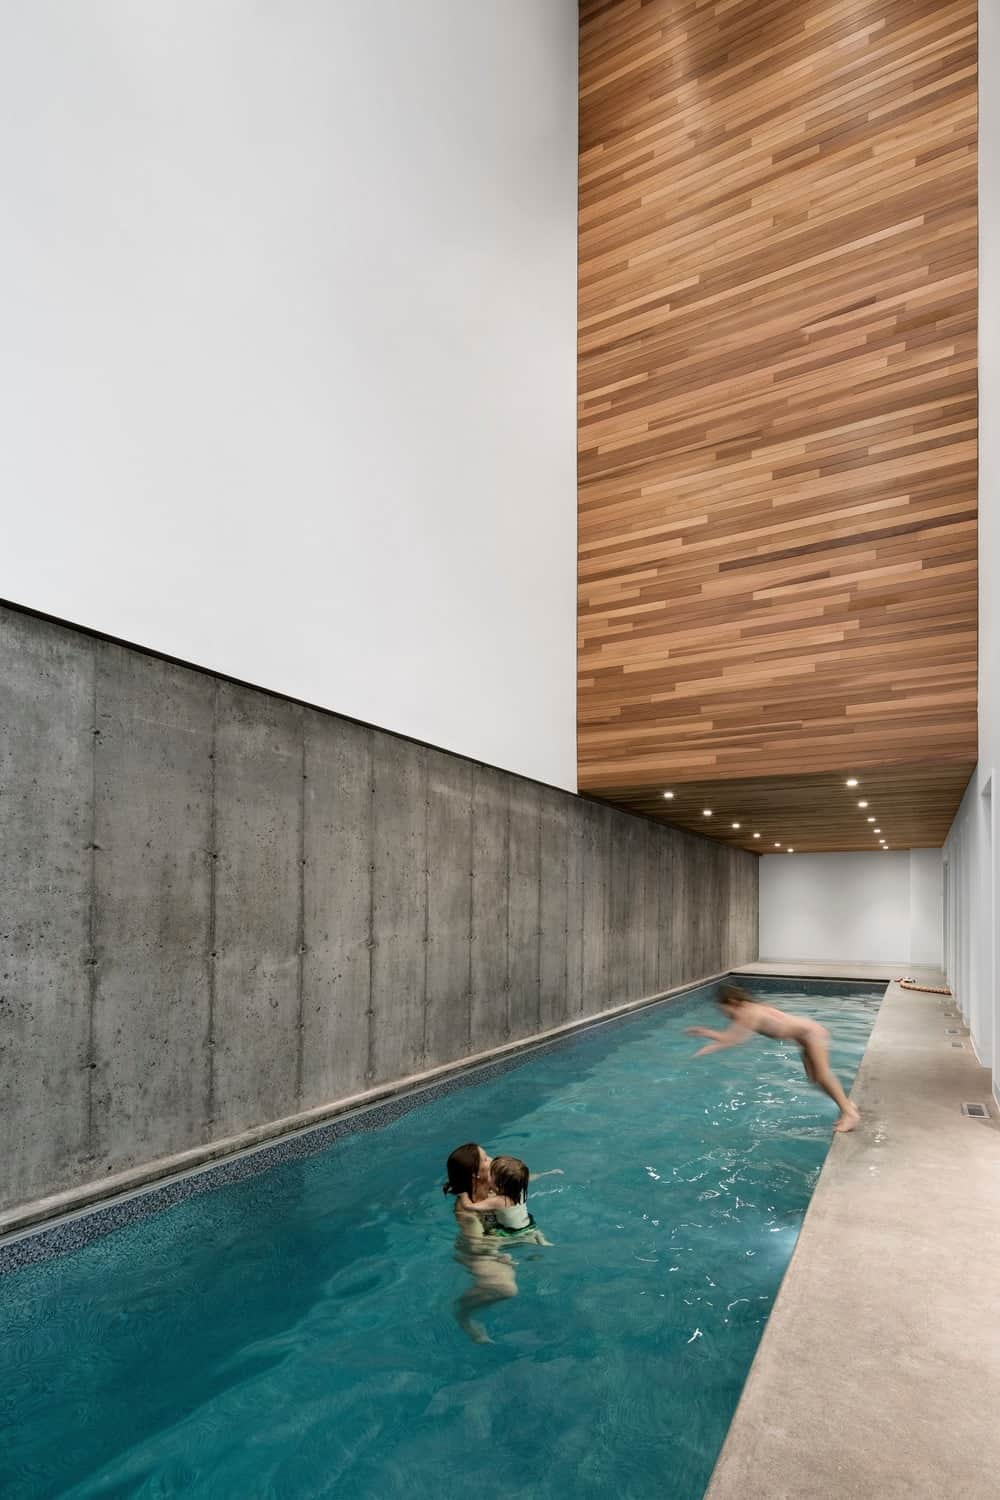 Long Rectangle Pool With Recessed Ceiling Lights On A Hardwood Ceiling. |  Bourgeois / Lechasseur Architects